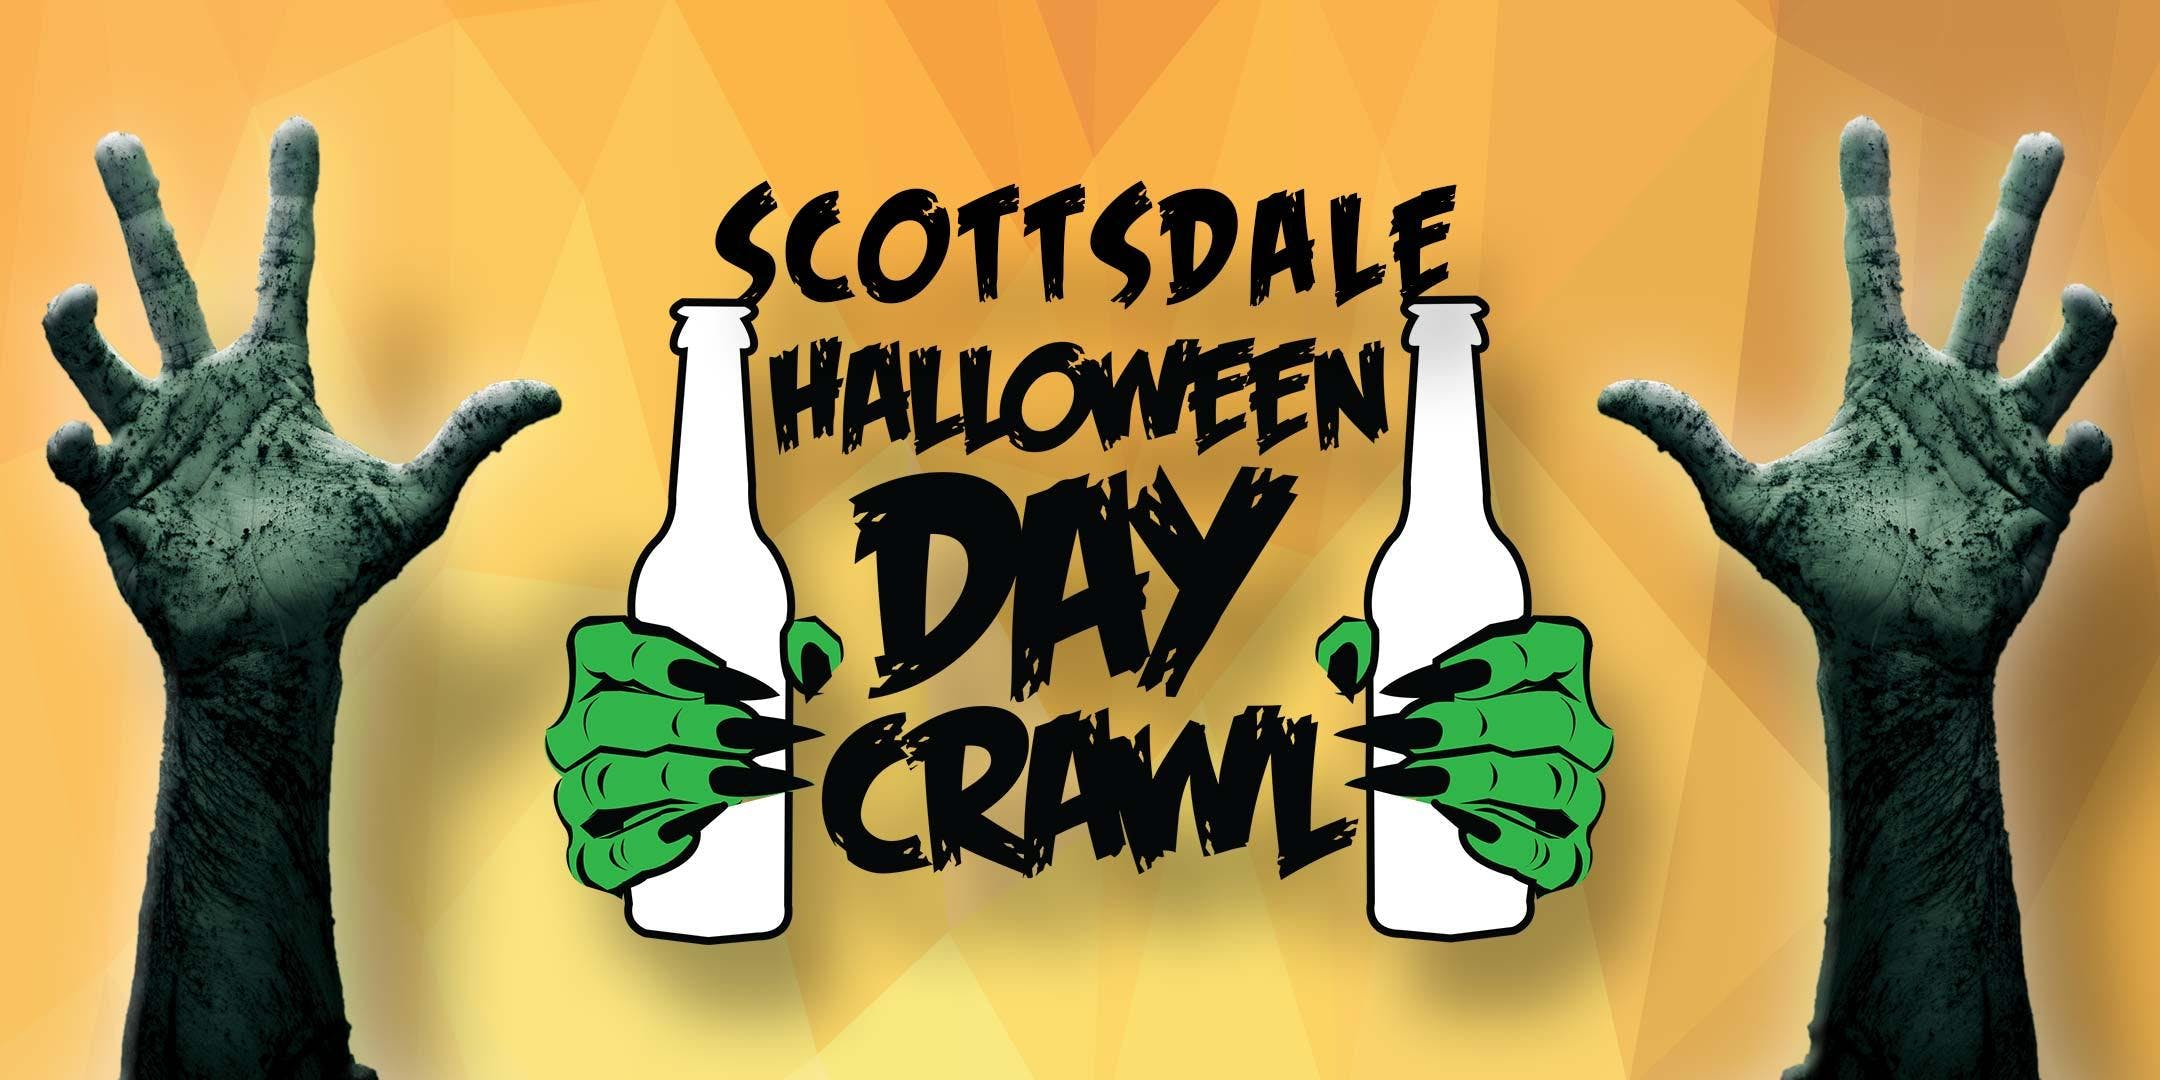 Halloween DAY Crawl - Sat. Oct. 26th in Old Town - Scottsdale